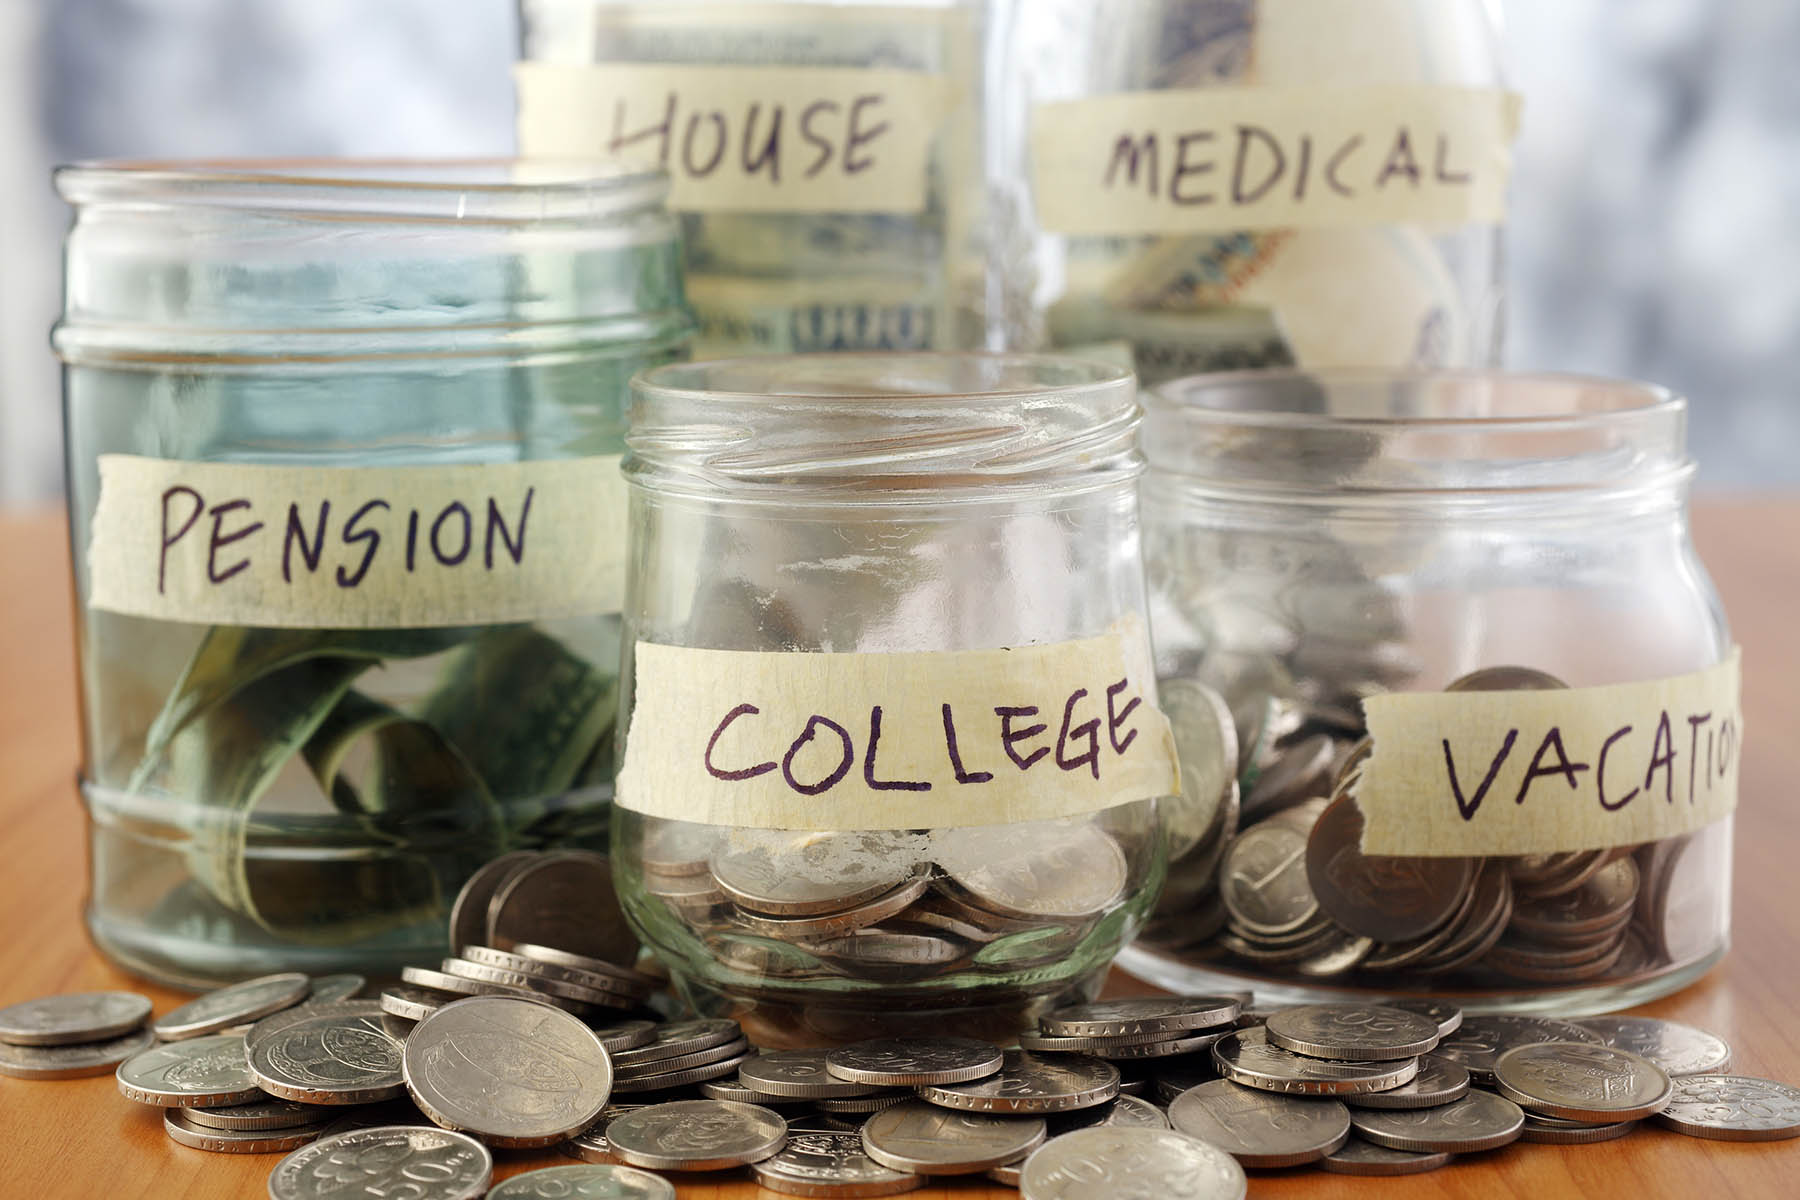 Savings jars college pension vacation medical house